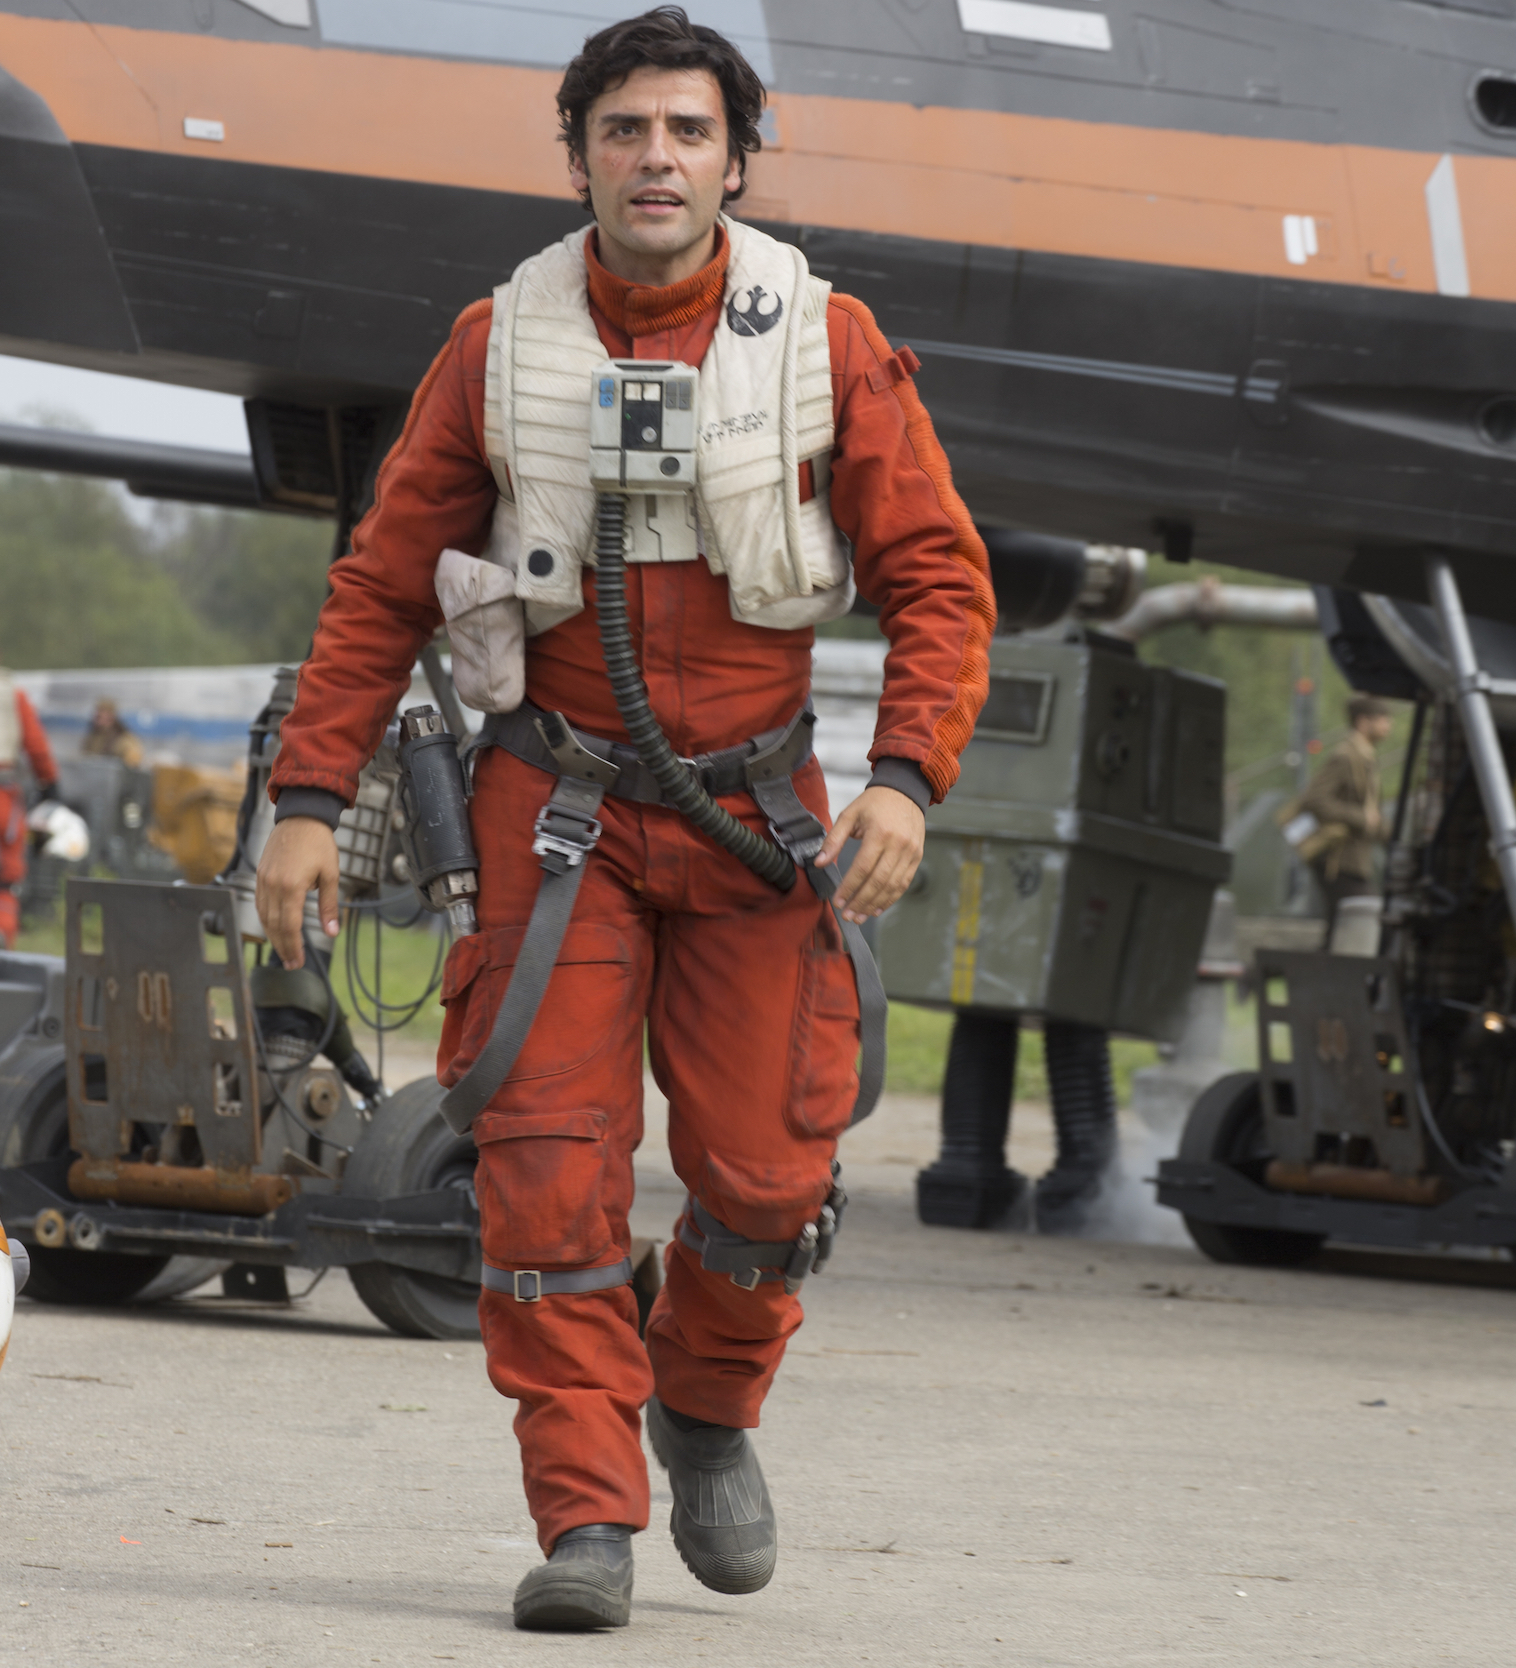 Here S How To Cosplay As The Stars Of Star Wars The Force Awakens The Daily Dot Star Wars Movie Poe Dameron Oscar Isaac